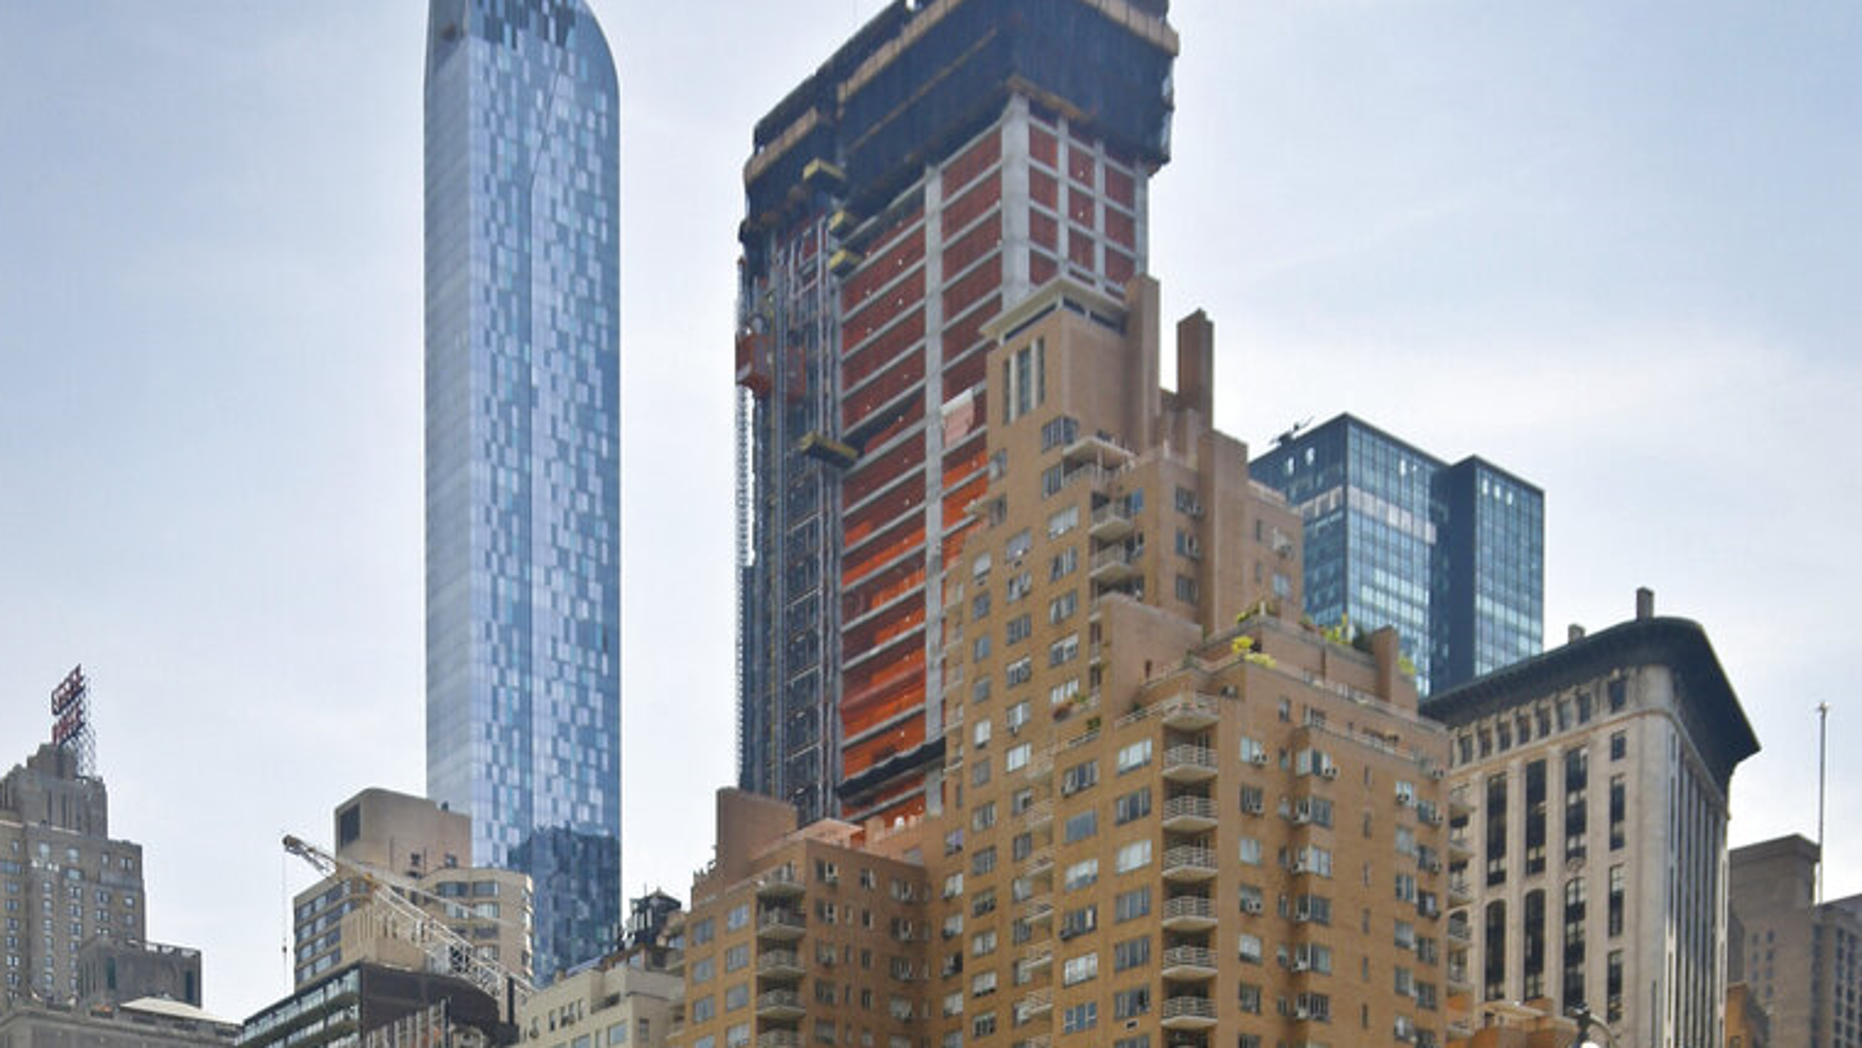 FILE: A crane sits on top of the ongoing construction of a new condominium skyscraper at 220 Central Park South in New York.